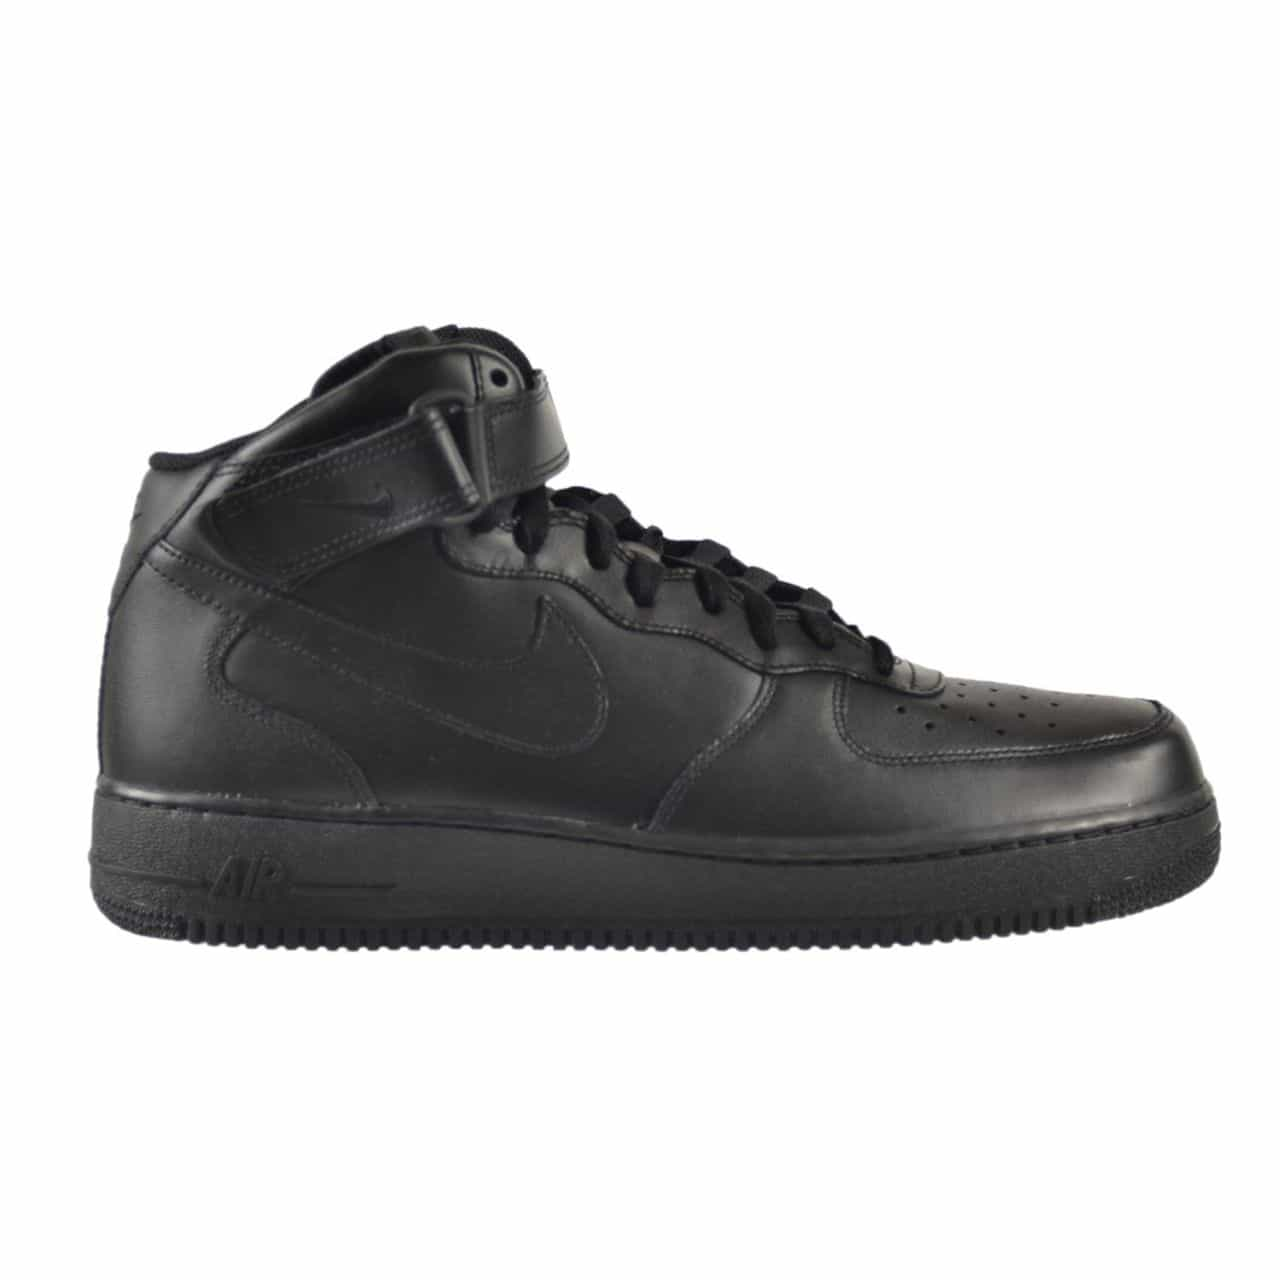 ADIDASI NIKE AIR FORCE 1 MID '07 - 315123 001 1